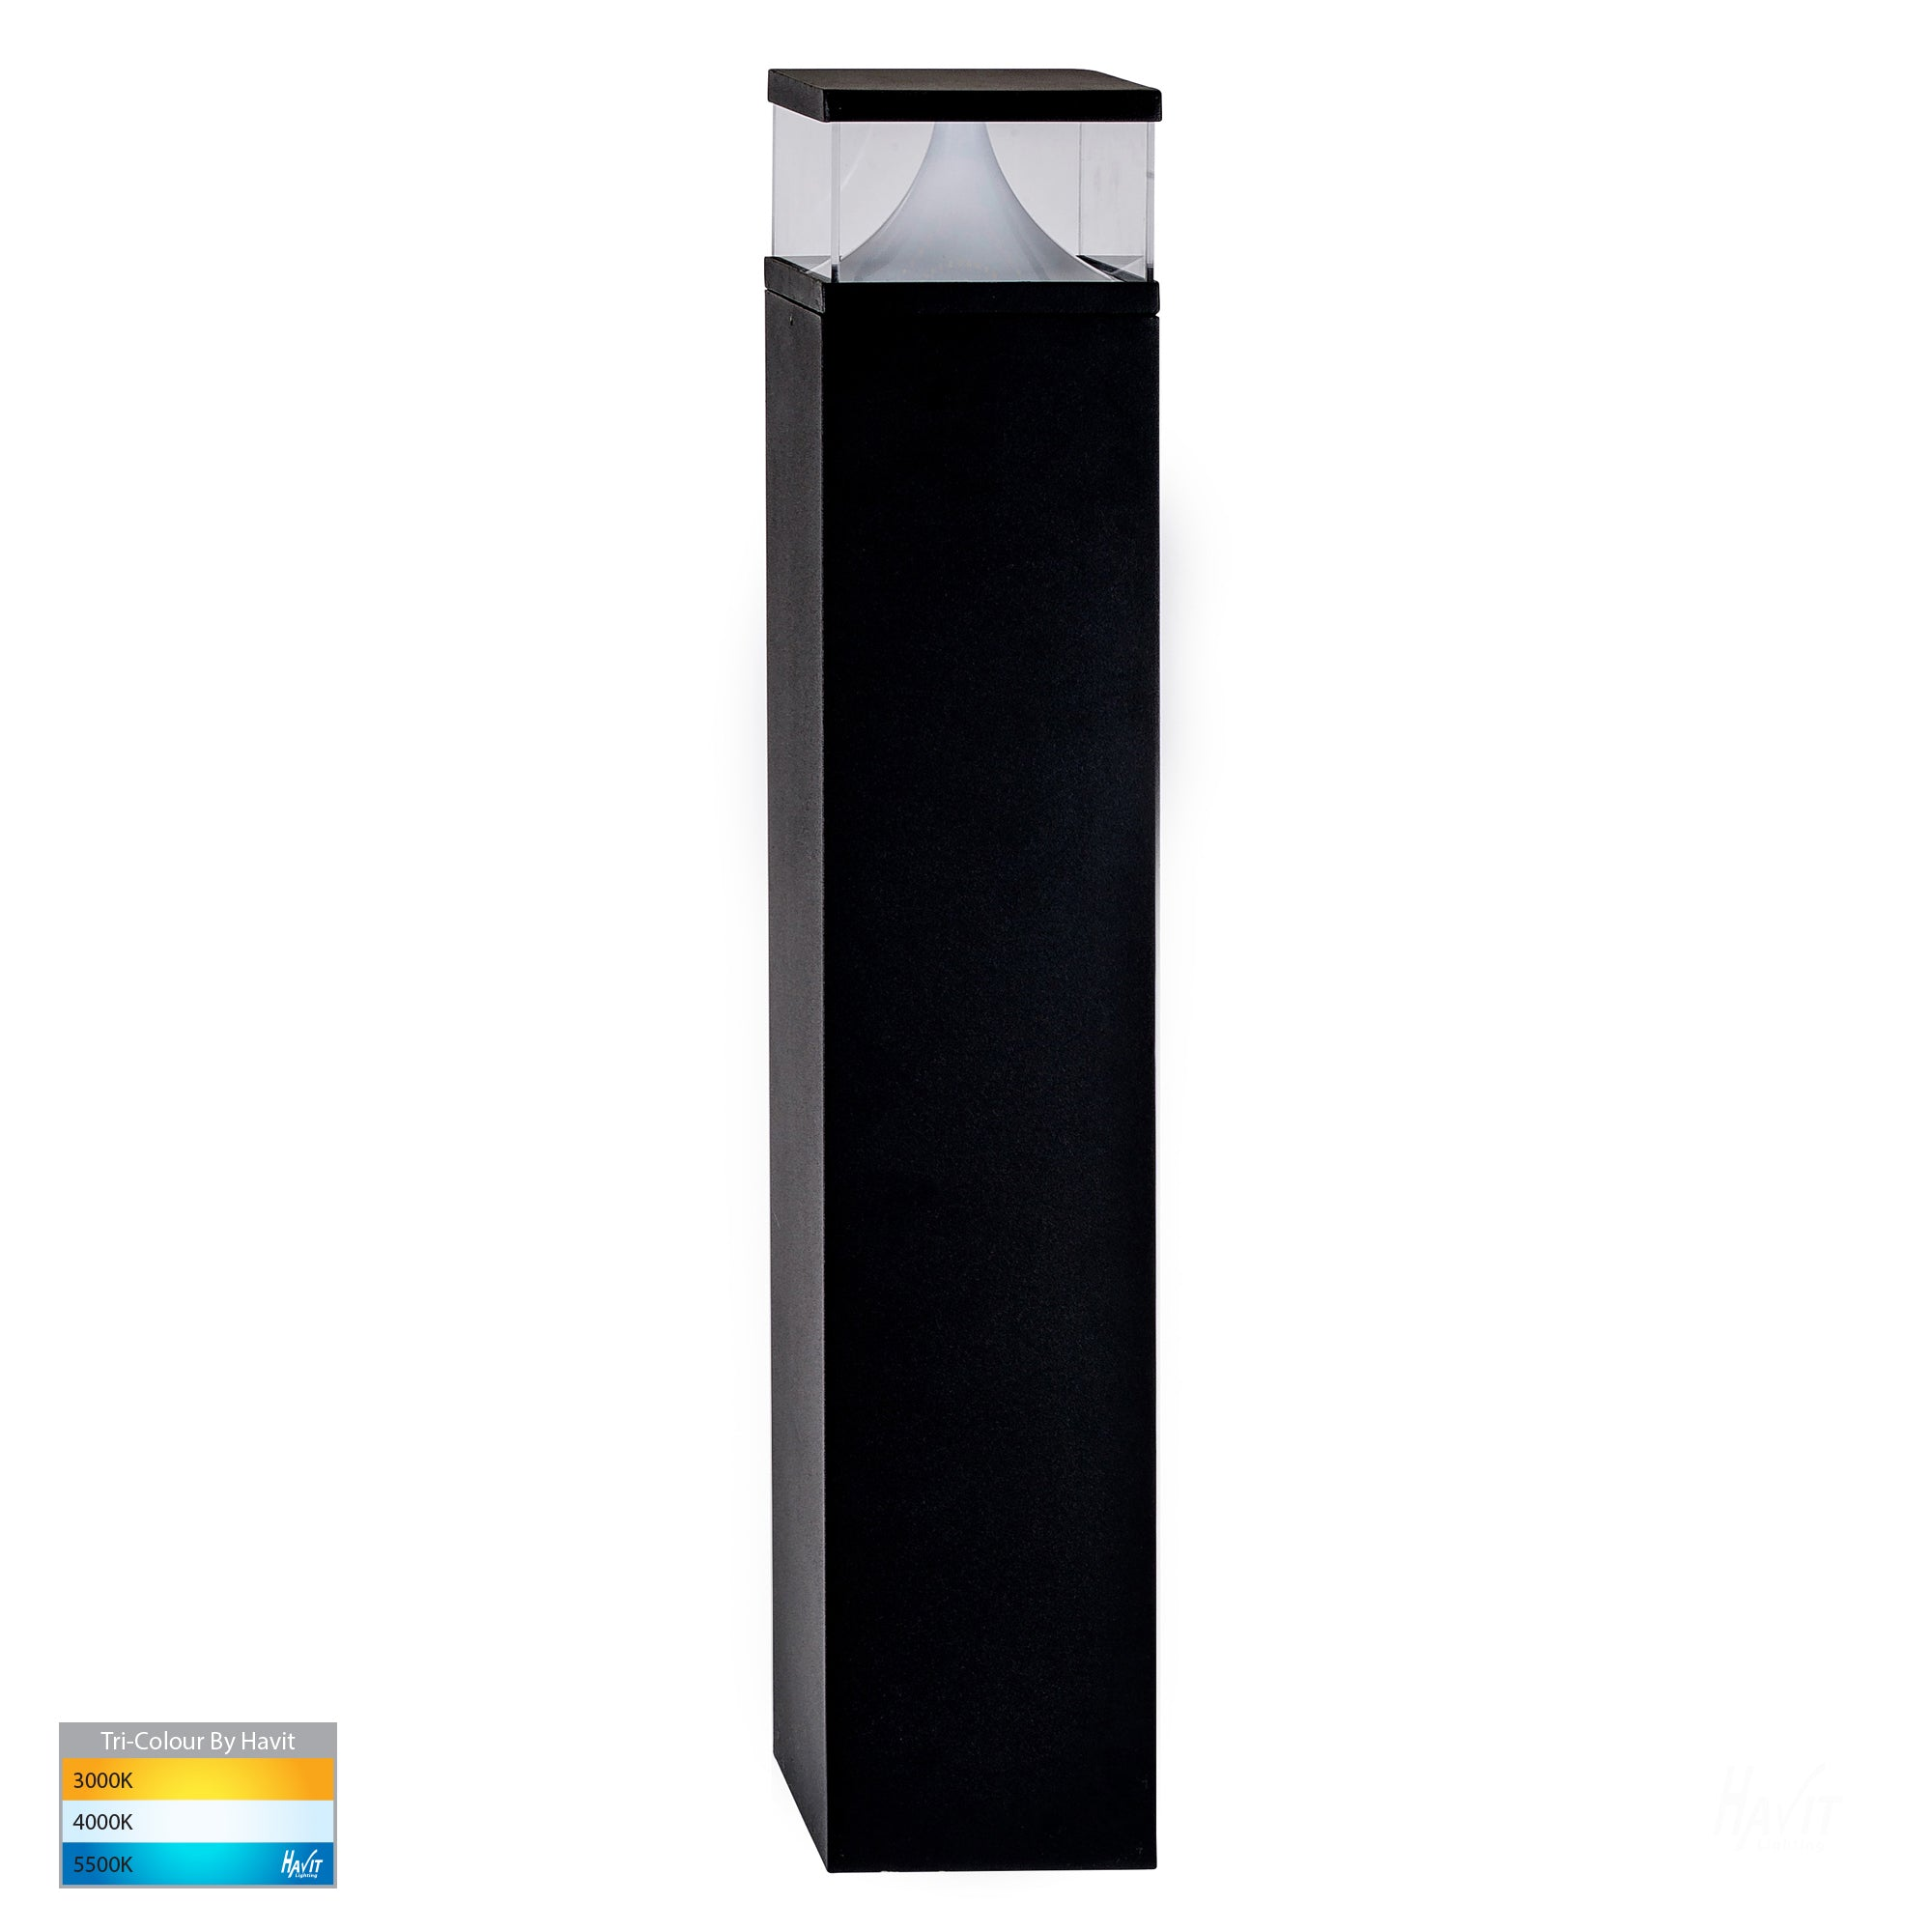 HV1628T-BLK-SQ - Divad 600mm Black LED Bollard Light